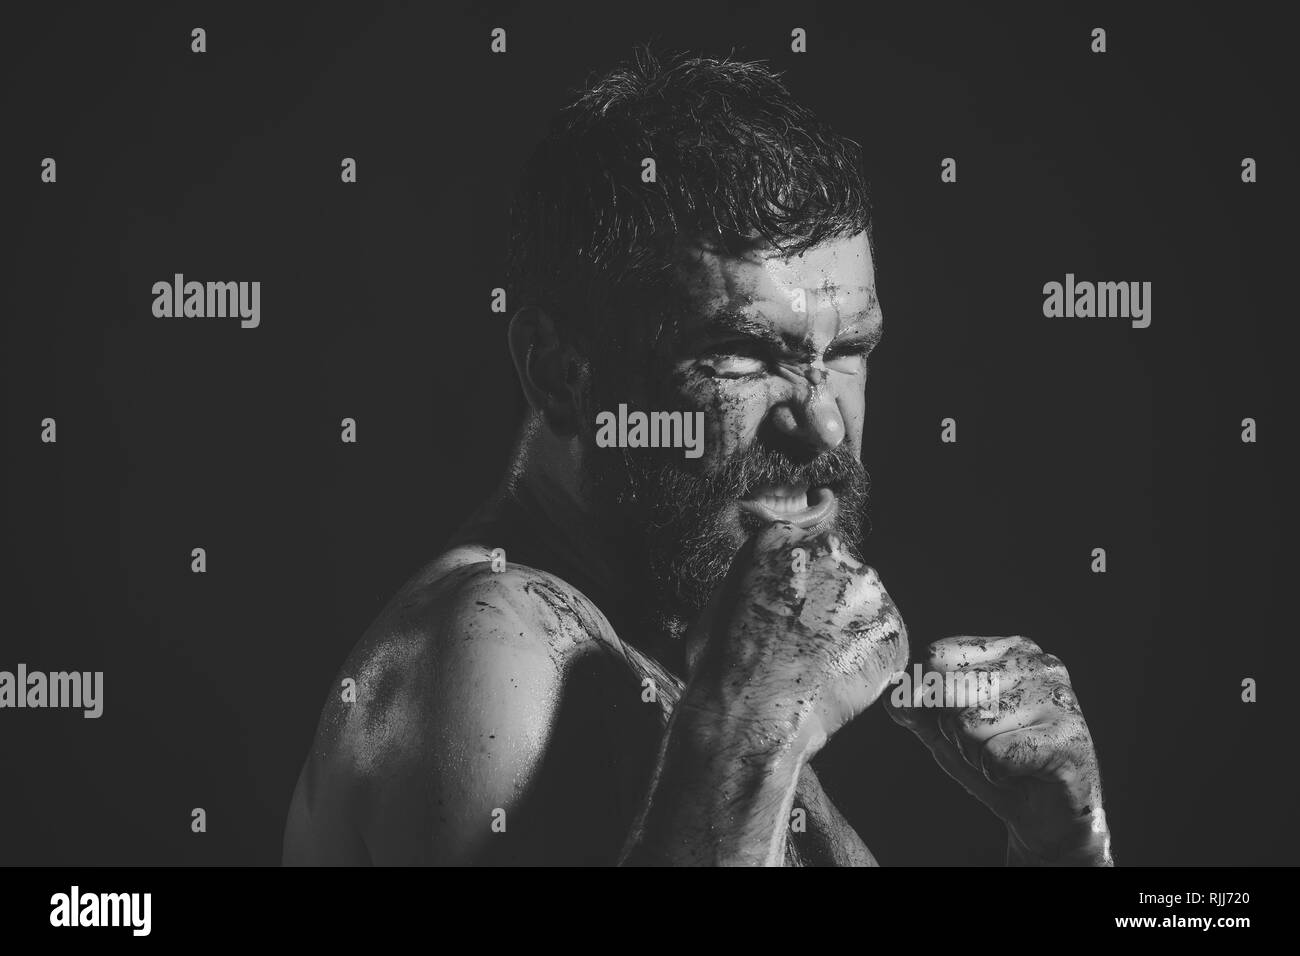 Bearded hipster with blood paint on angry face - Stock Image